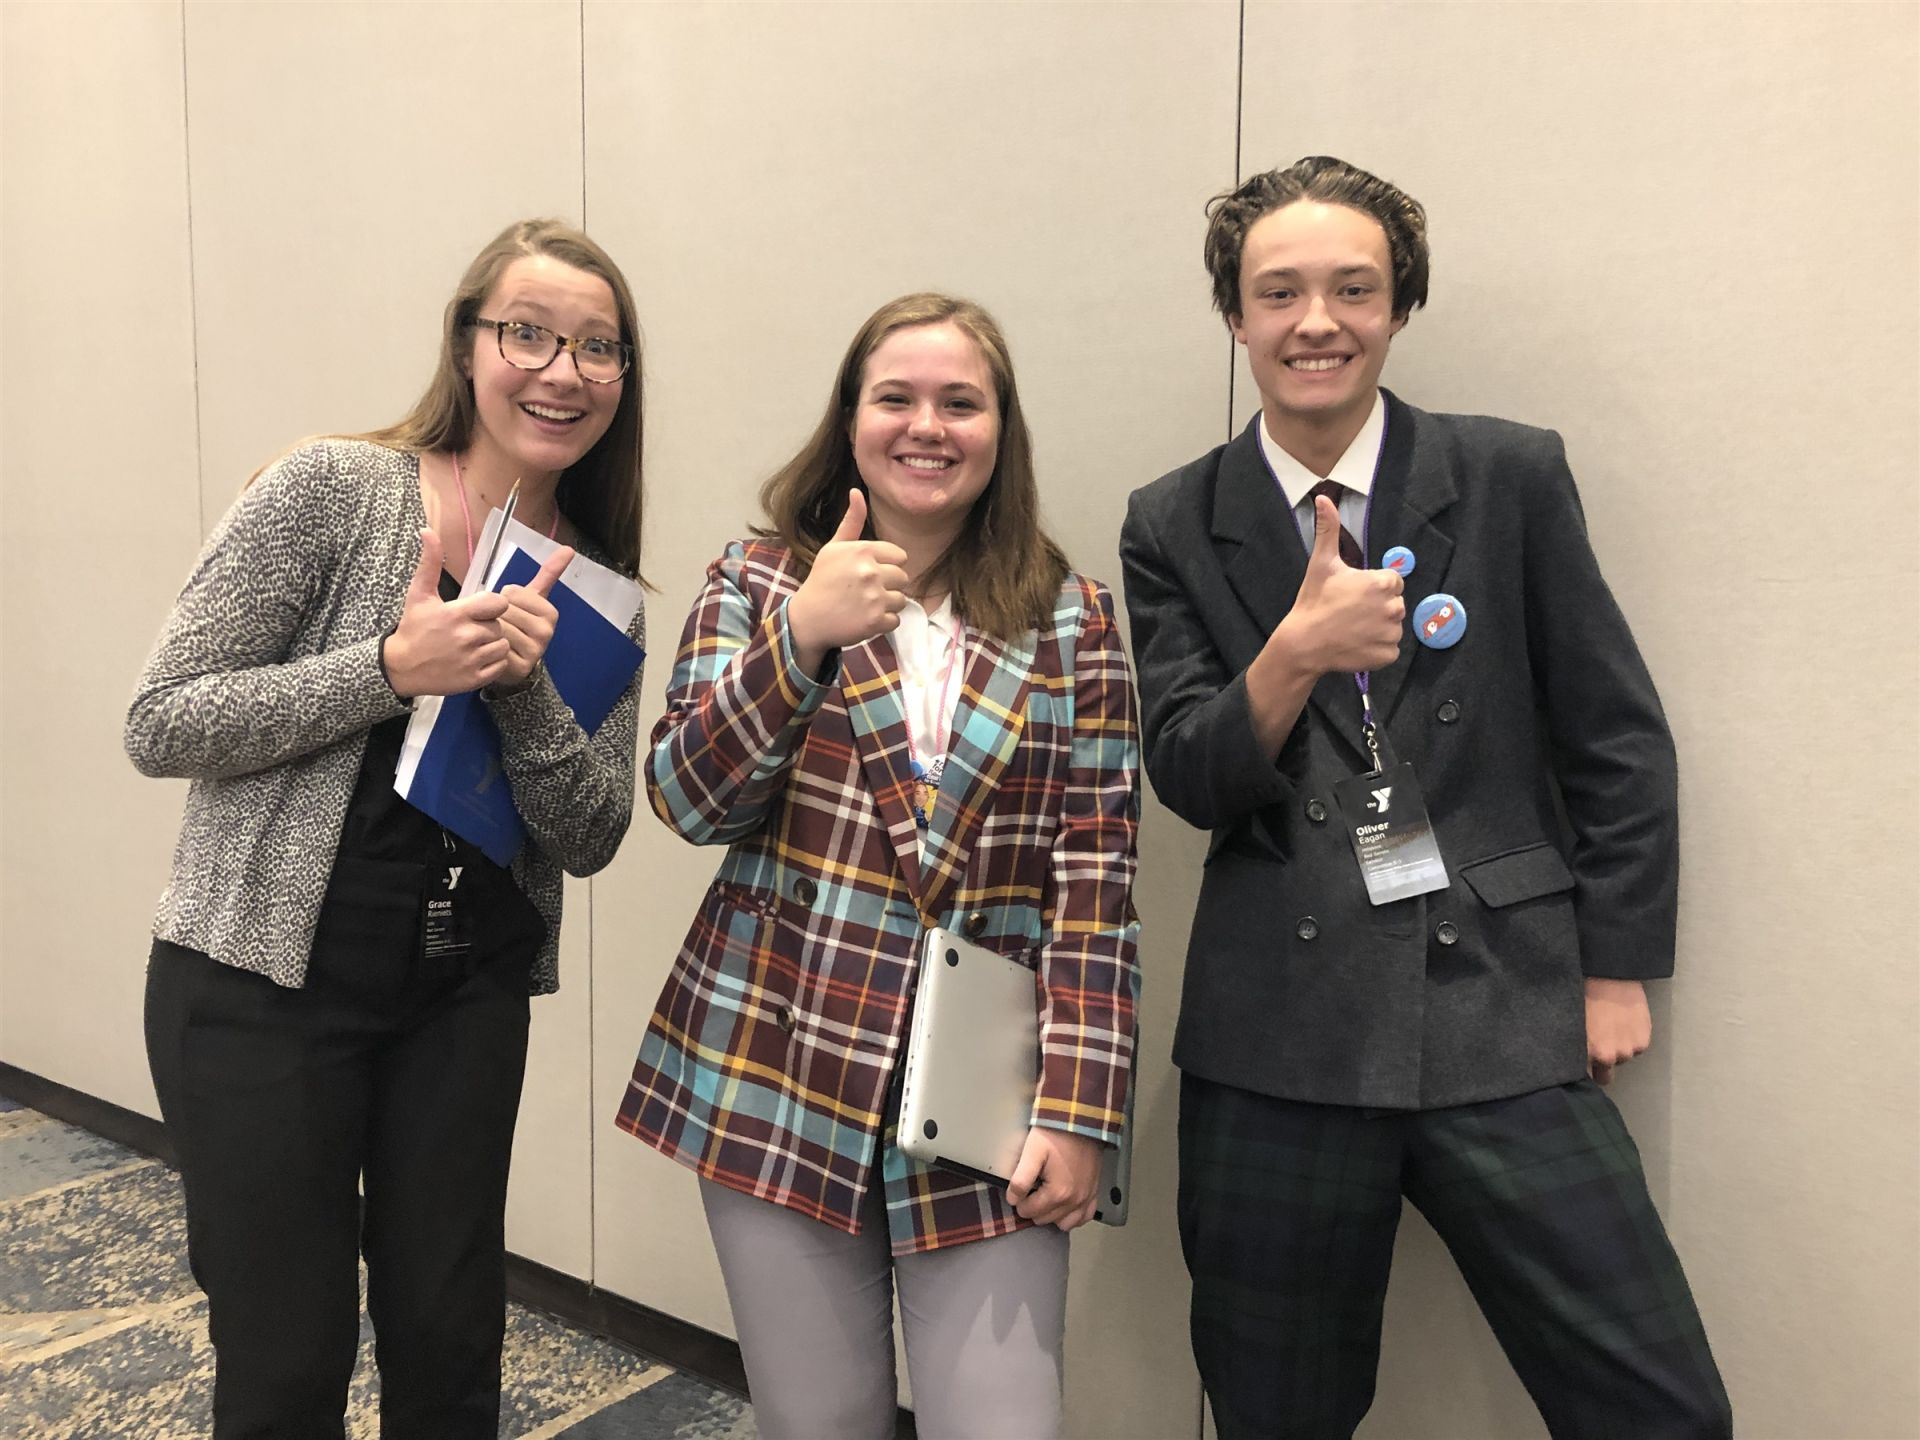 Grace, Ellie, and Oliver (from Hillsboro HS) in committee